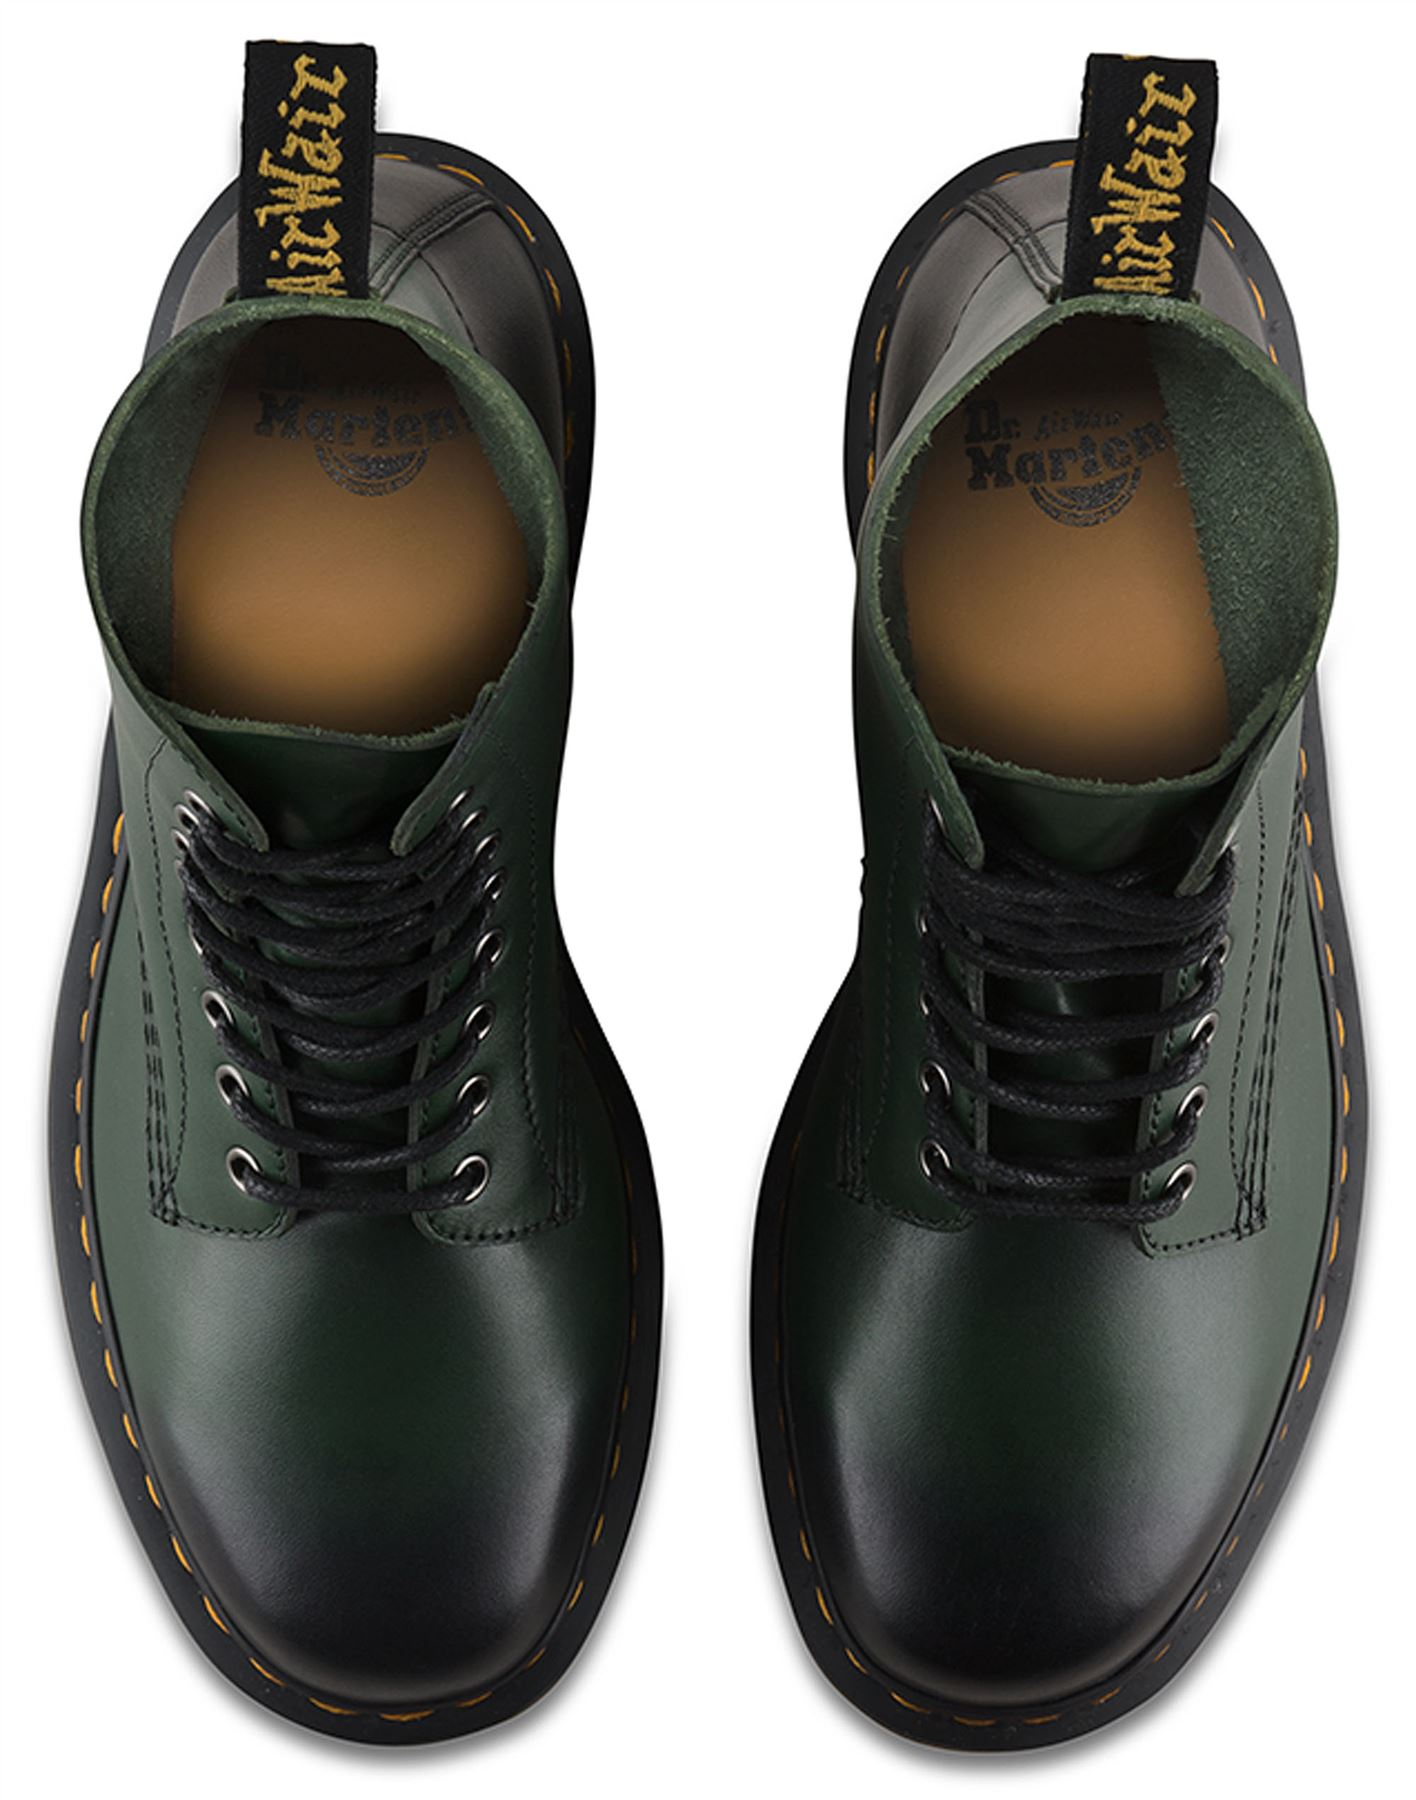 Dr Martens Mens 1460 Pascal Leather Green Temperley Burnished Analine Leather Pascal Boots 60e809